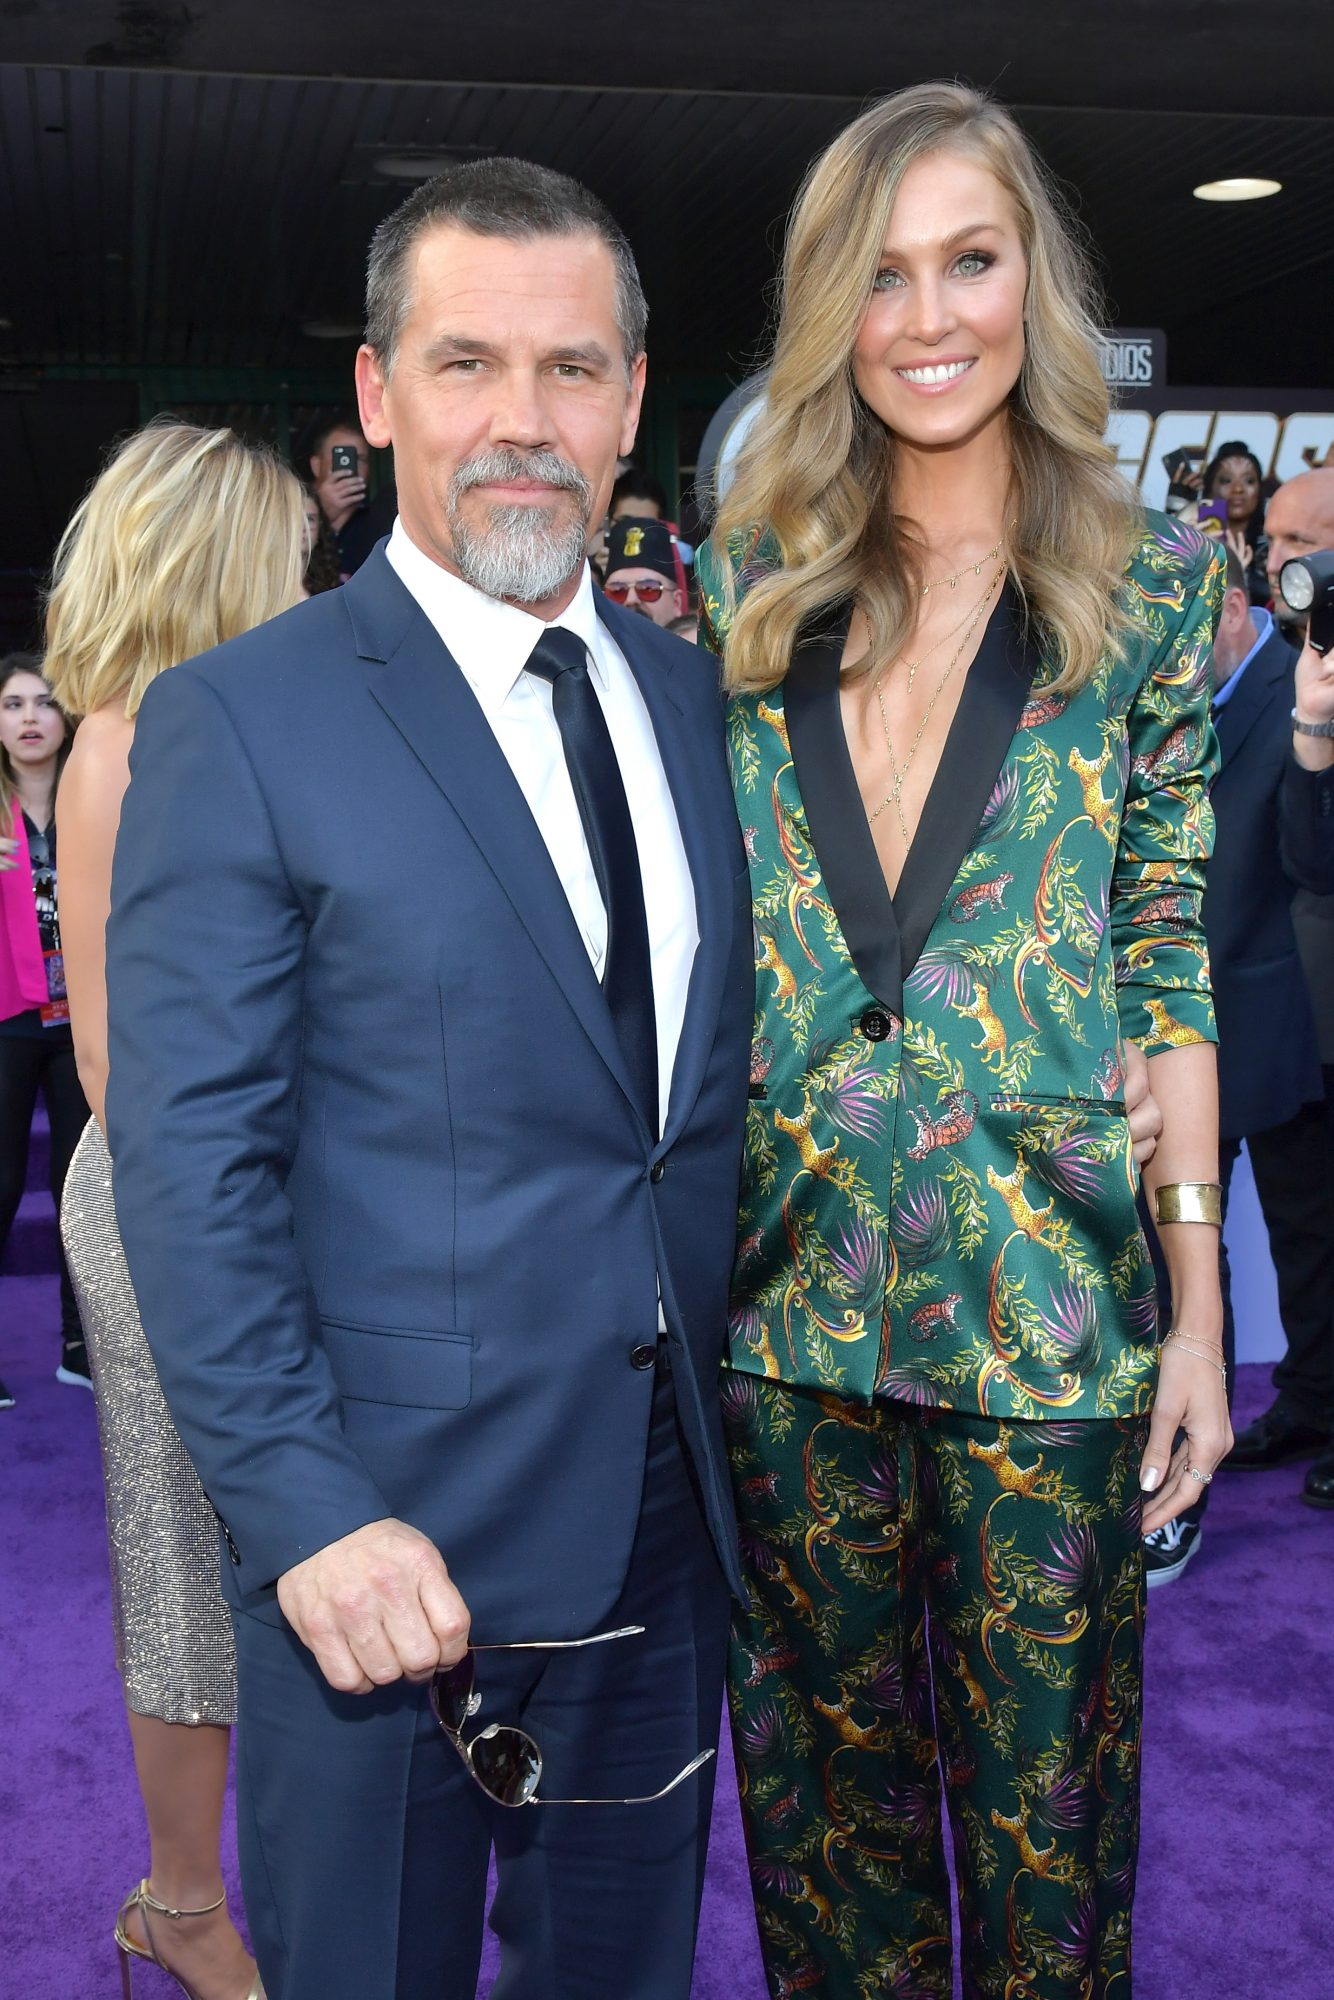 """Josh Brolin and Kathryn Boyd attend the world premiere of Walt Disney Studios Motion Pictures """"Avengers: Endgame"""" at the Los Angeles Convention Center on April 22, 2019 in Los Angeles, California.  (Photo by Amy Sussman/Getty Images)"""